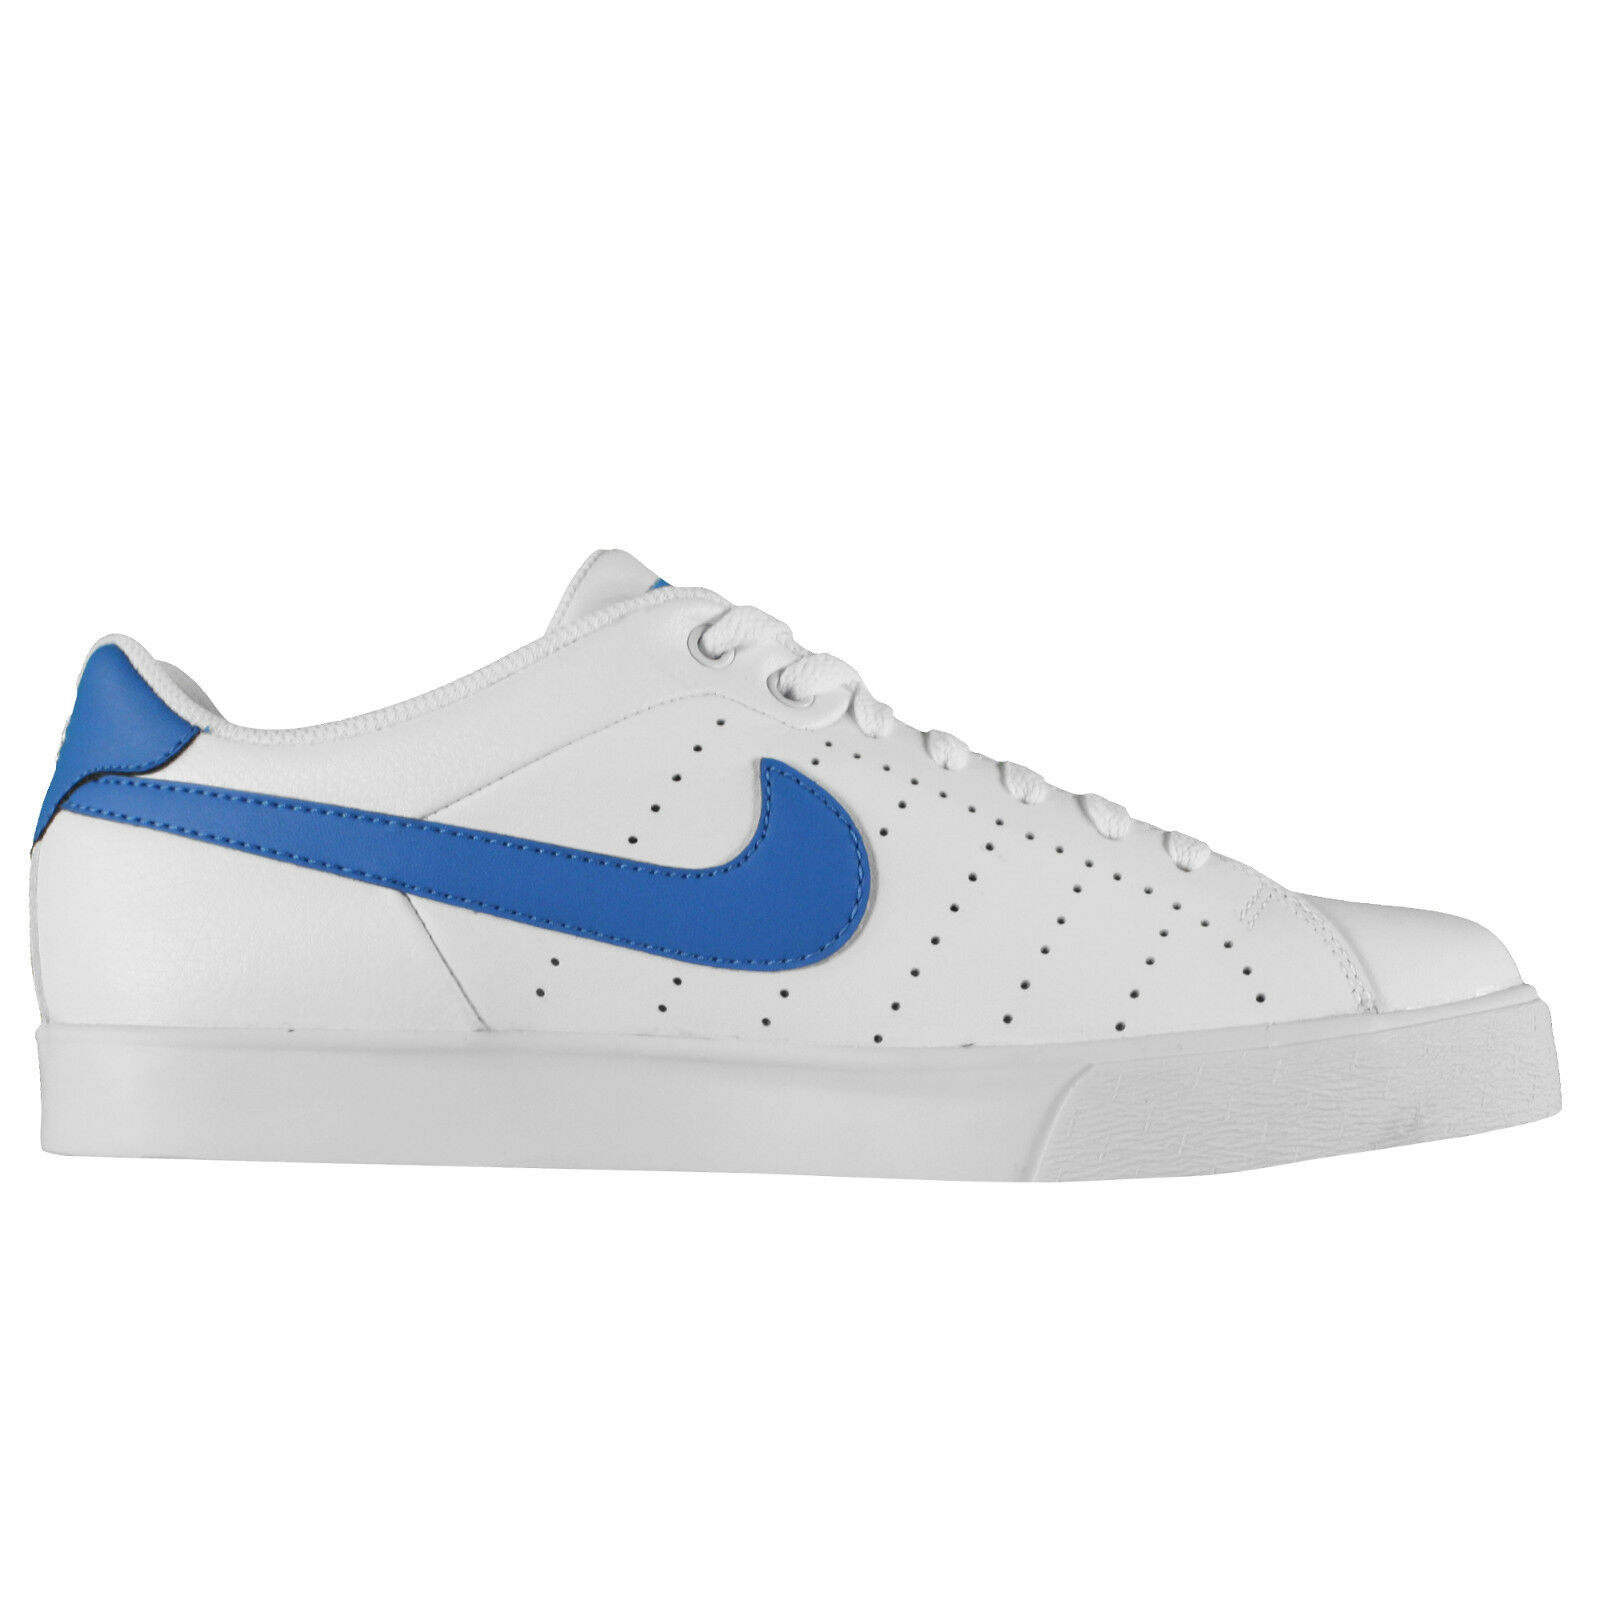 NIKE Court Tour Lea White/Italy Blue Neu gr:42 US:8,5 Sneaker 458673-149 flash